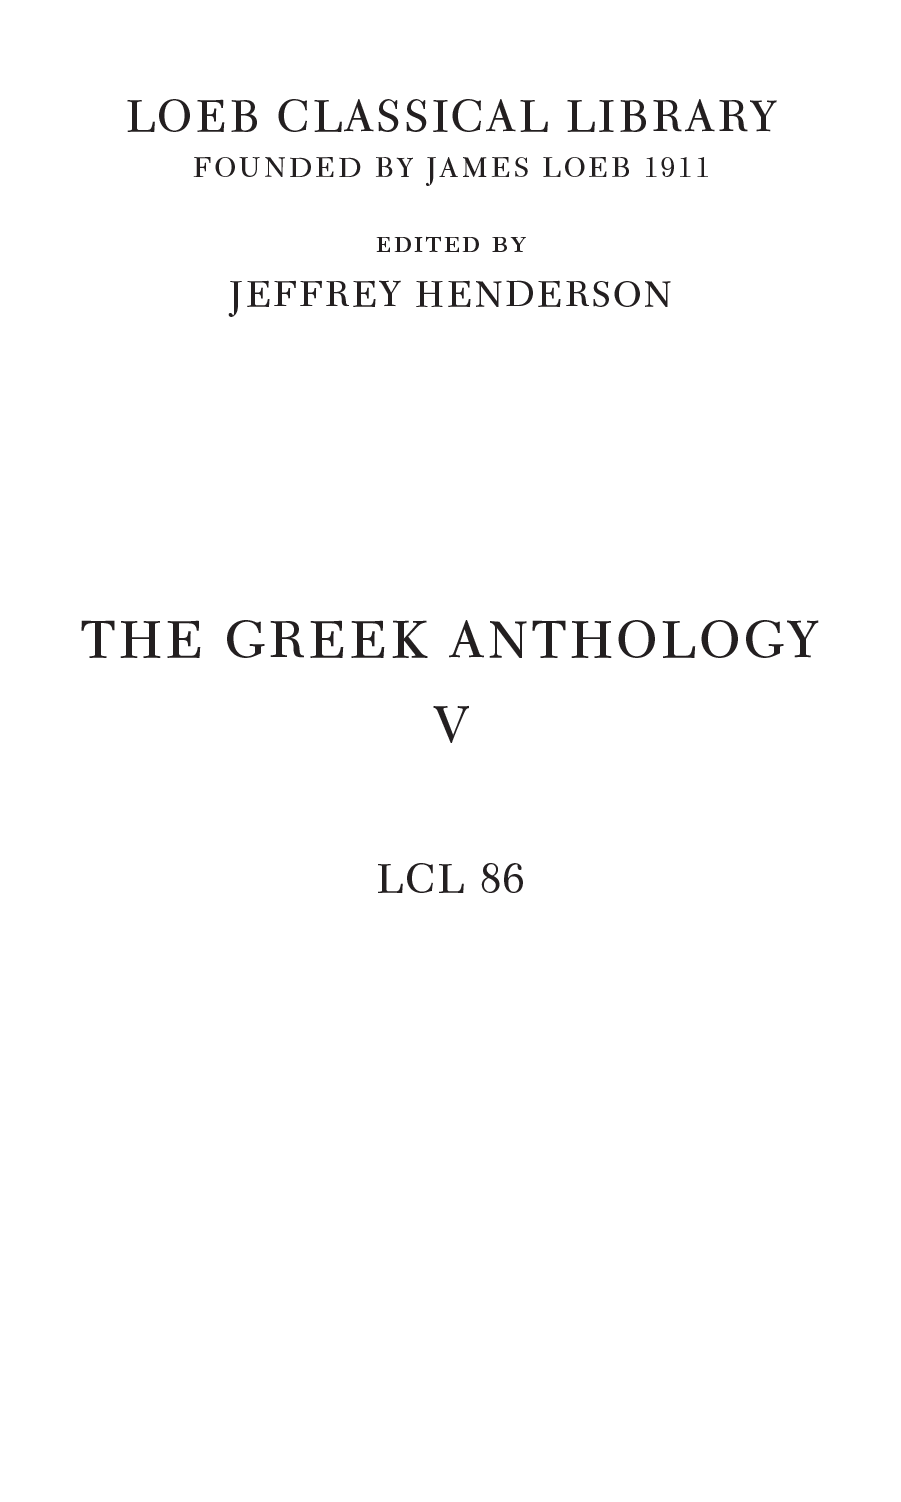 LOEB CLASSICAL LIBRARY FOUNDED BY JAMES LOEB 1911 EDITED BY JEFFREY HENDERSON THE GREEK ANTHOLOGY V LCL 86